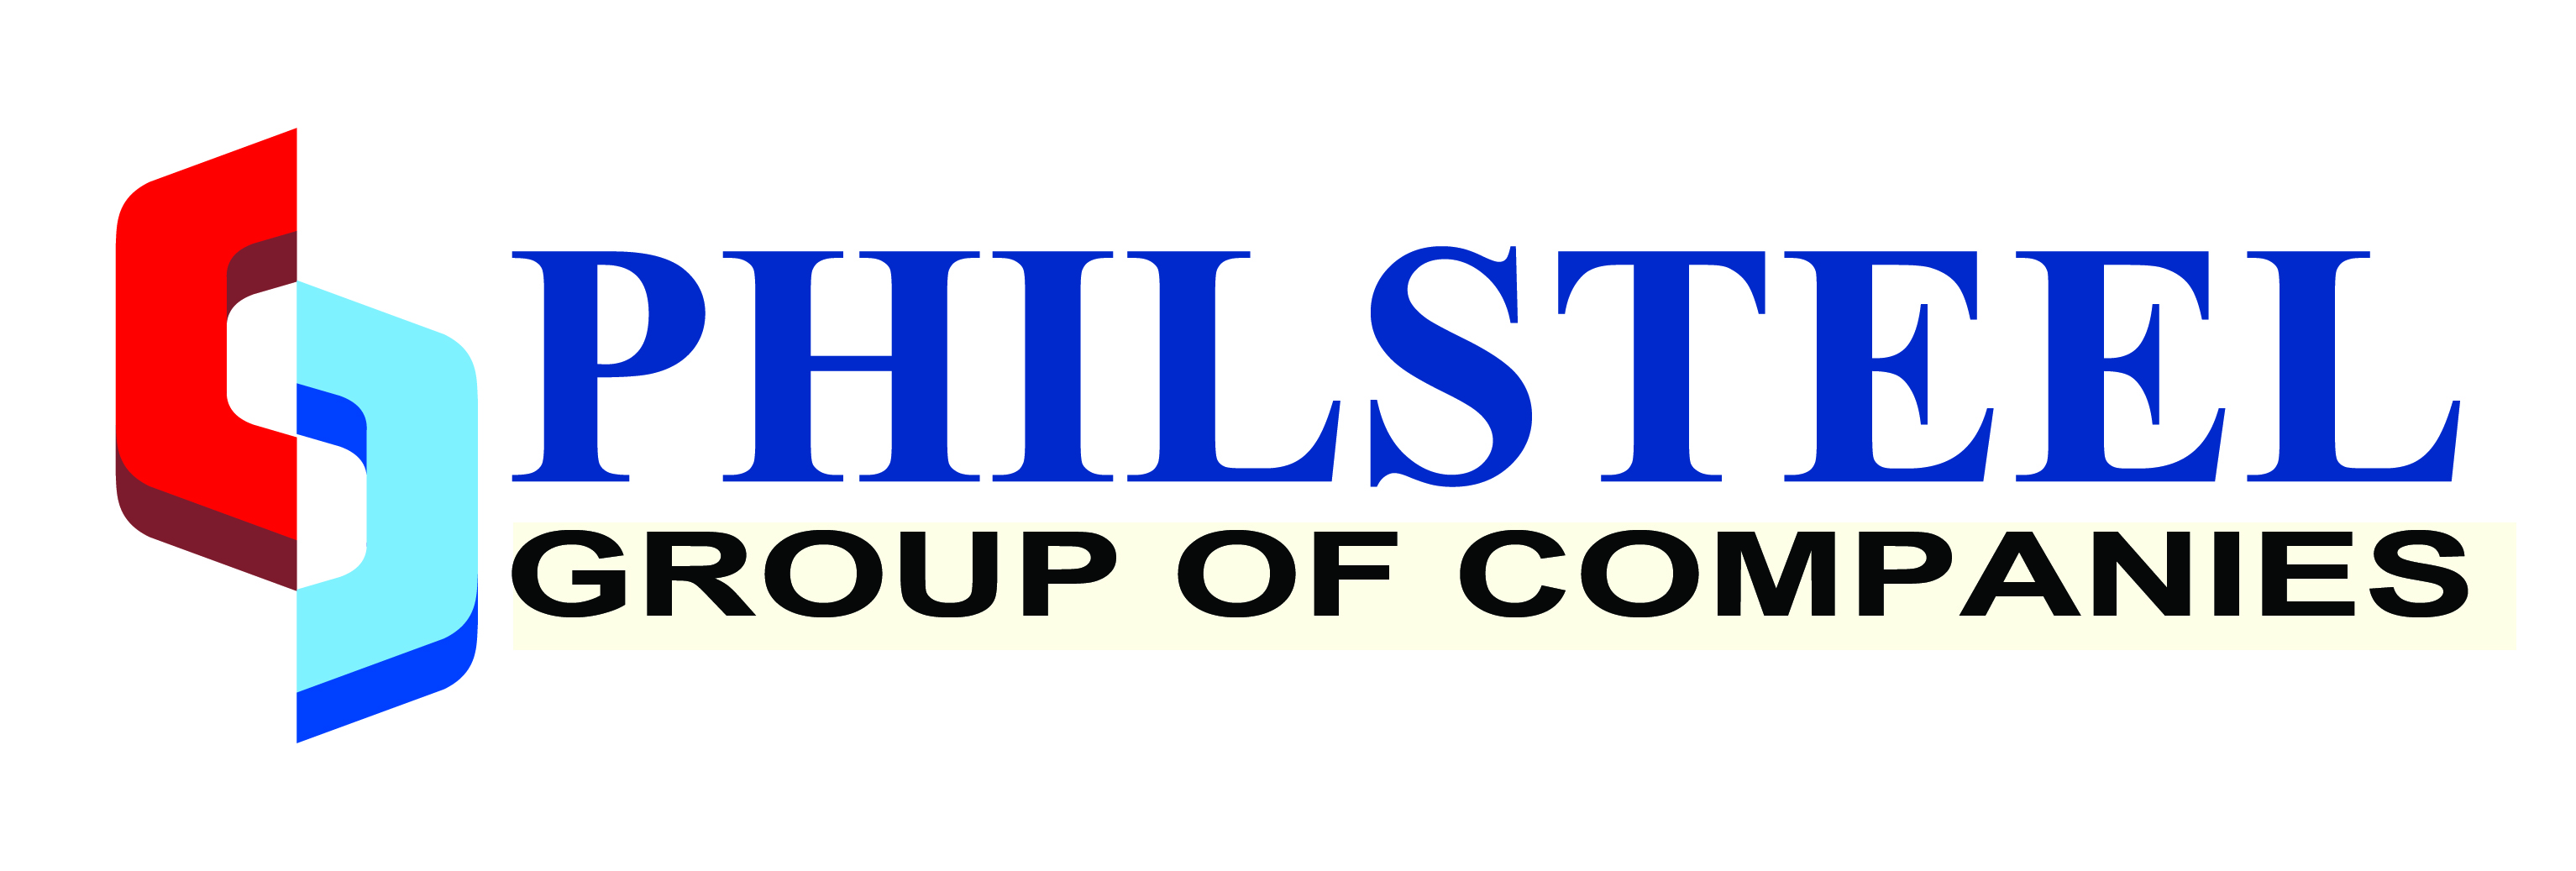 Philsteel Group of Companies